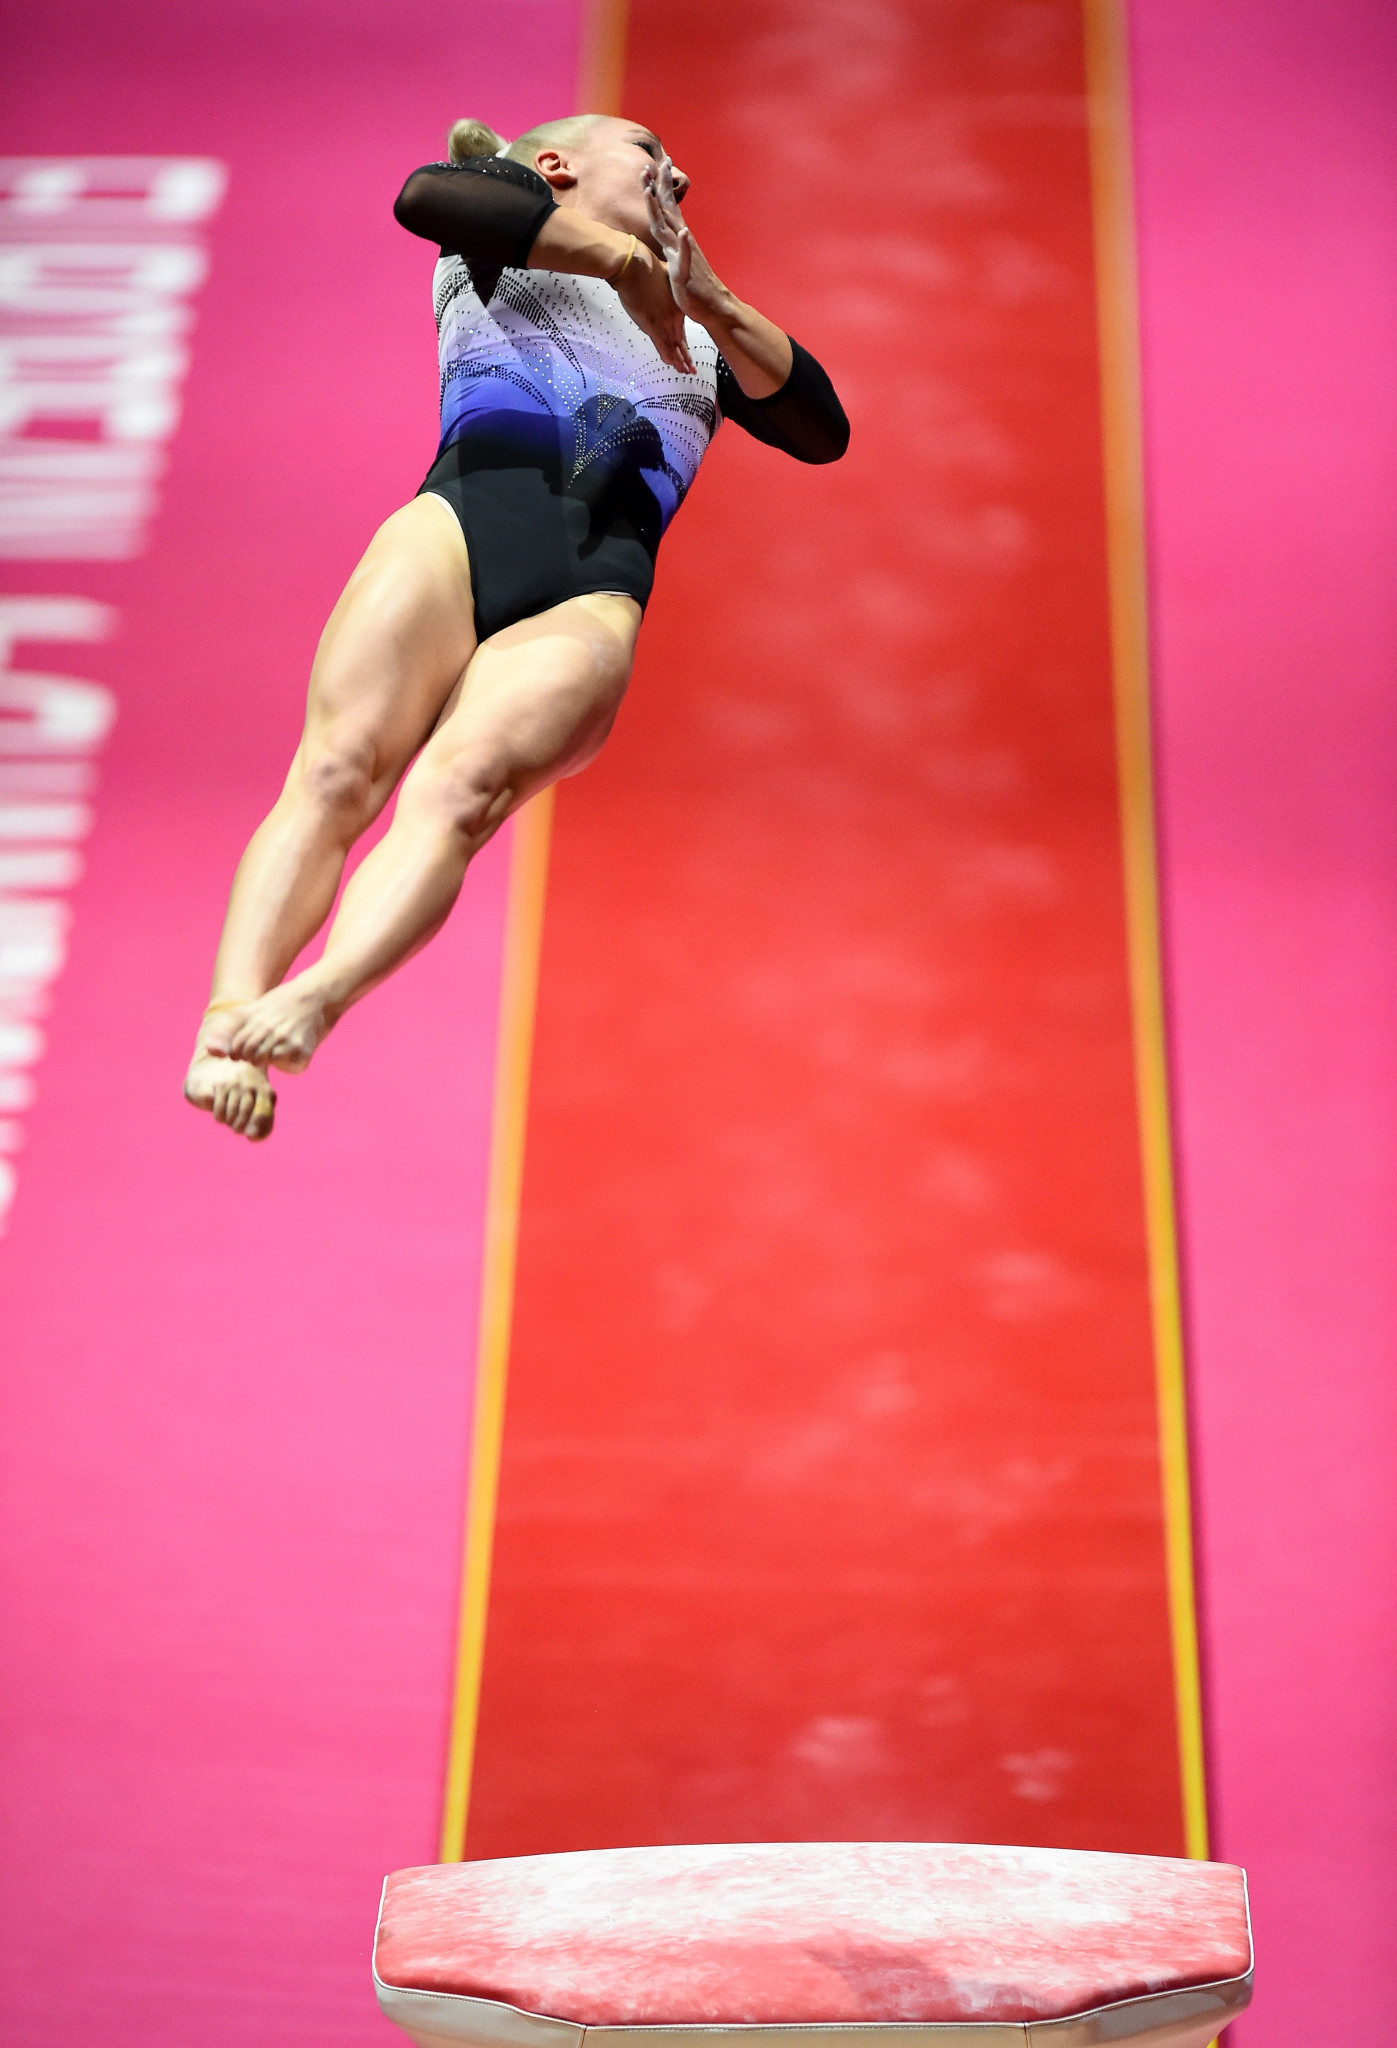 Hungary's Boglárka Dévai claimed her first-ever European title with victory in the women's vault ©Getty Images